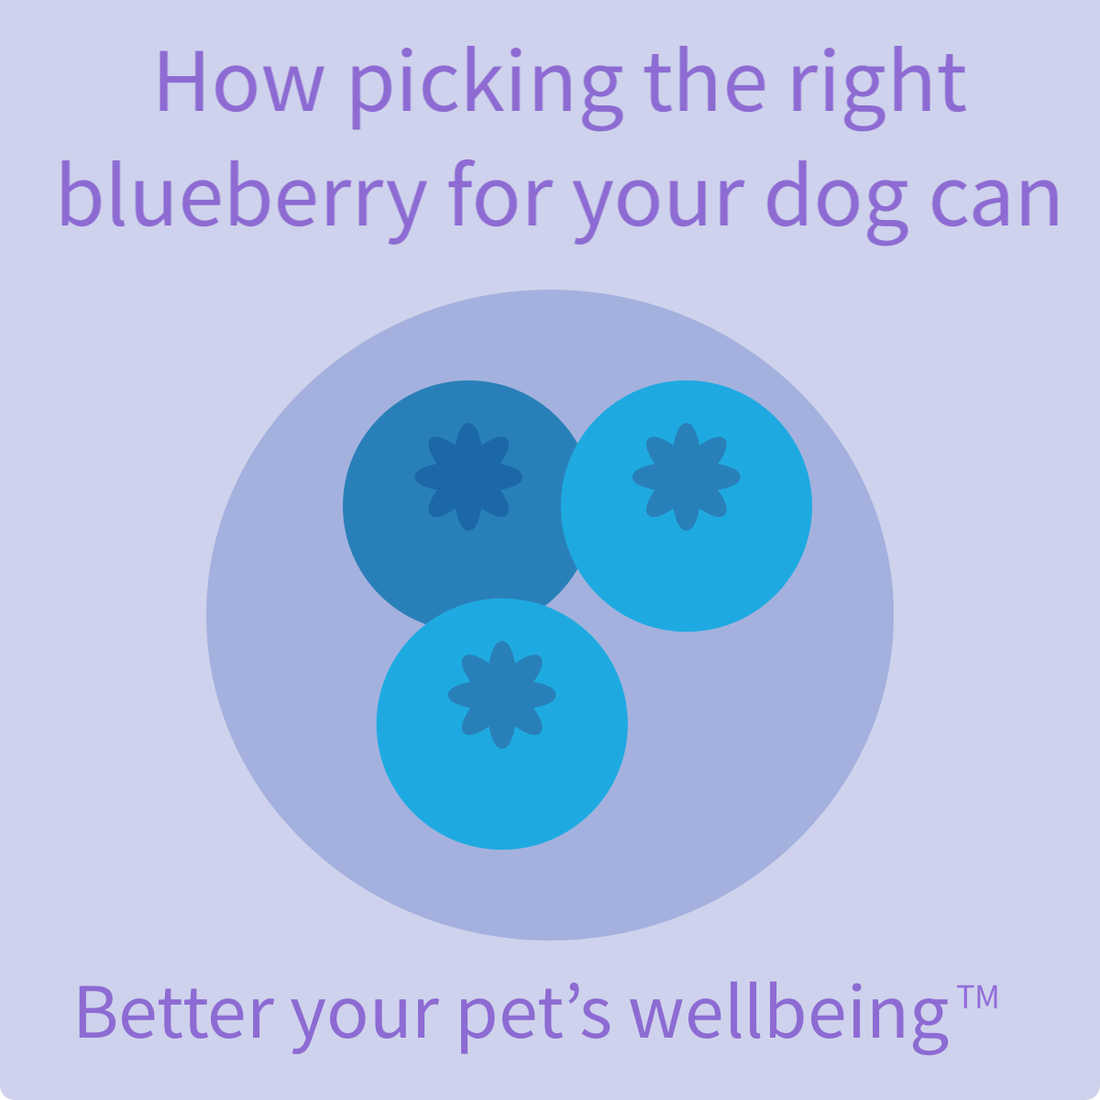 Can My Dog Have Blueberries? Blueberries are High in Antioxidants Making Them a Great Healthy Treat for your Dog.